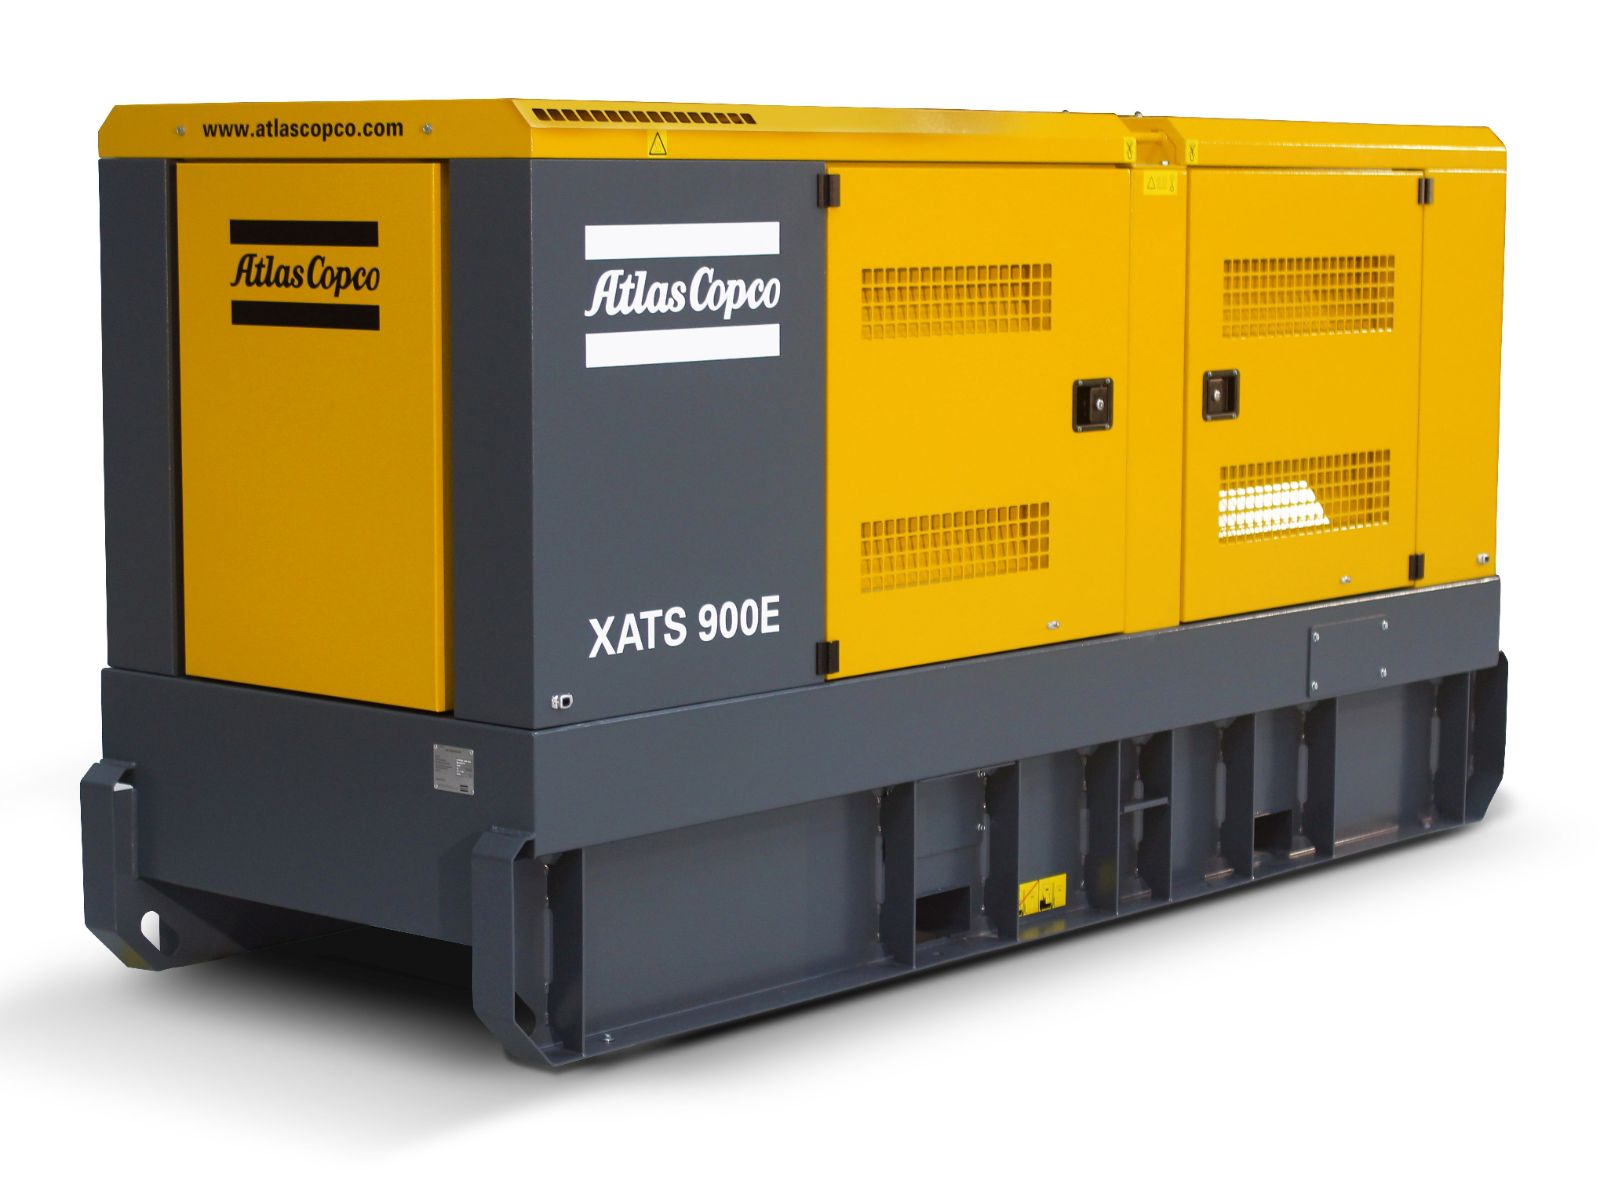 Atlas Copco Has Launched The Xats E An Electric Portable Compressor With The Versatility To Suit A Wide Range Of Demanding Applications